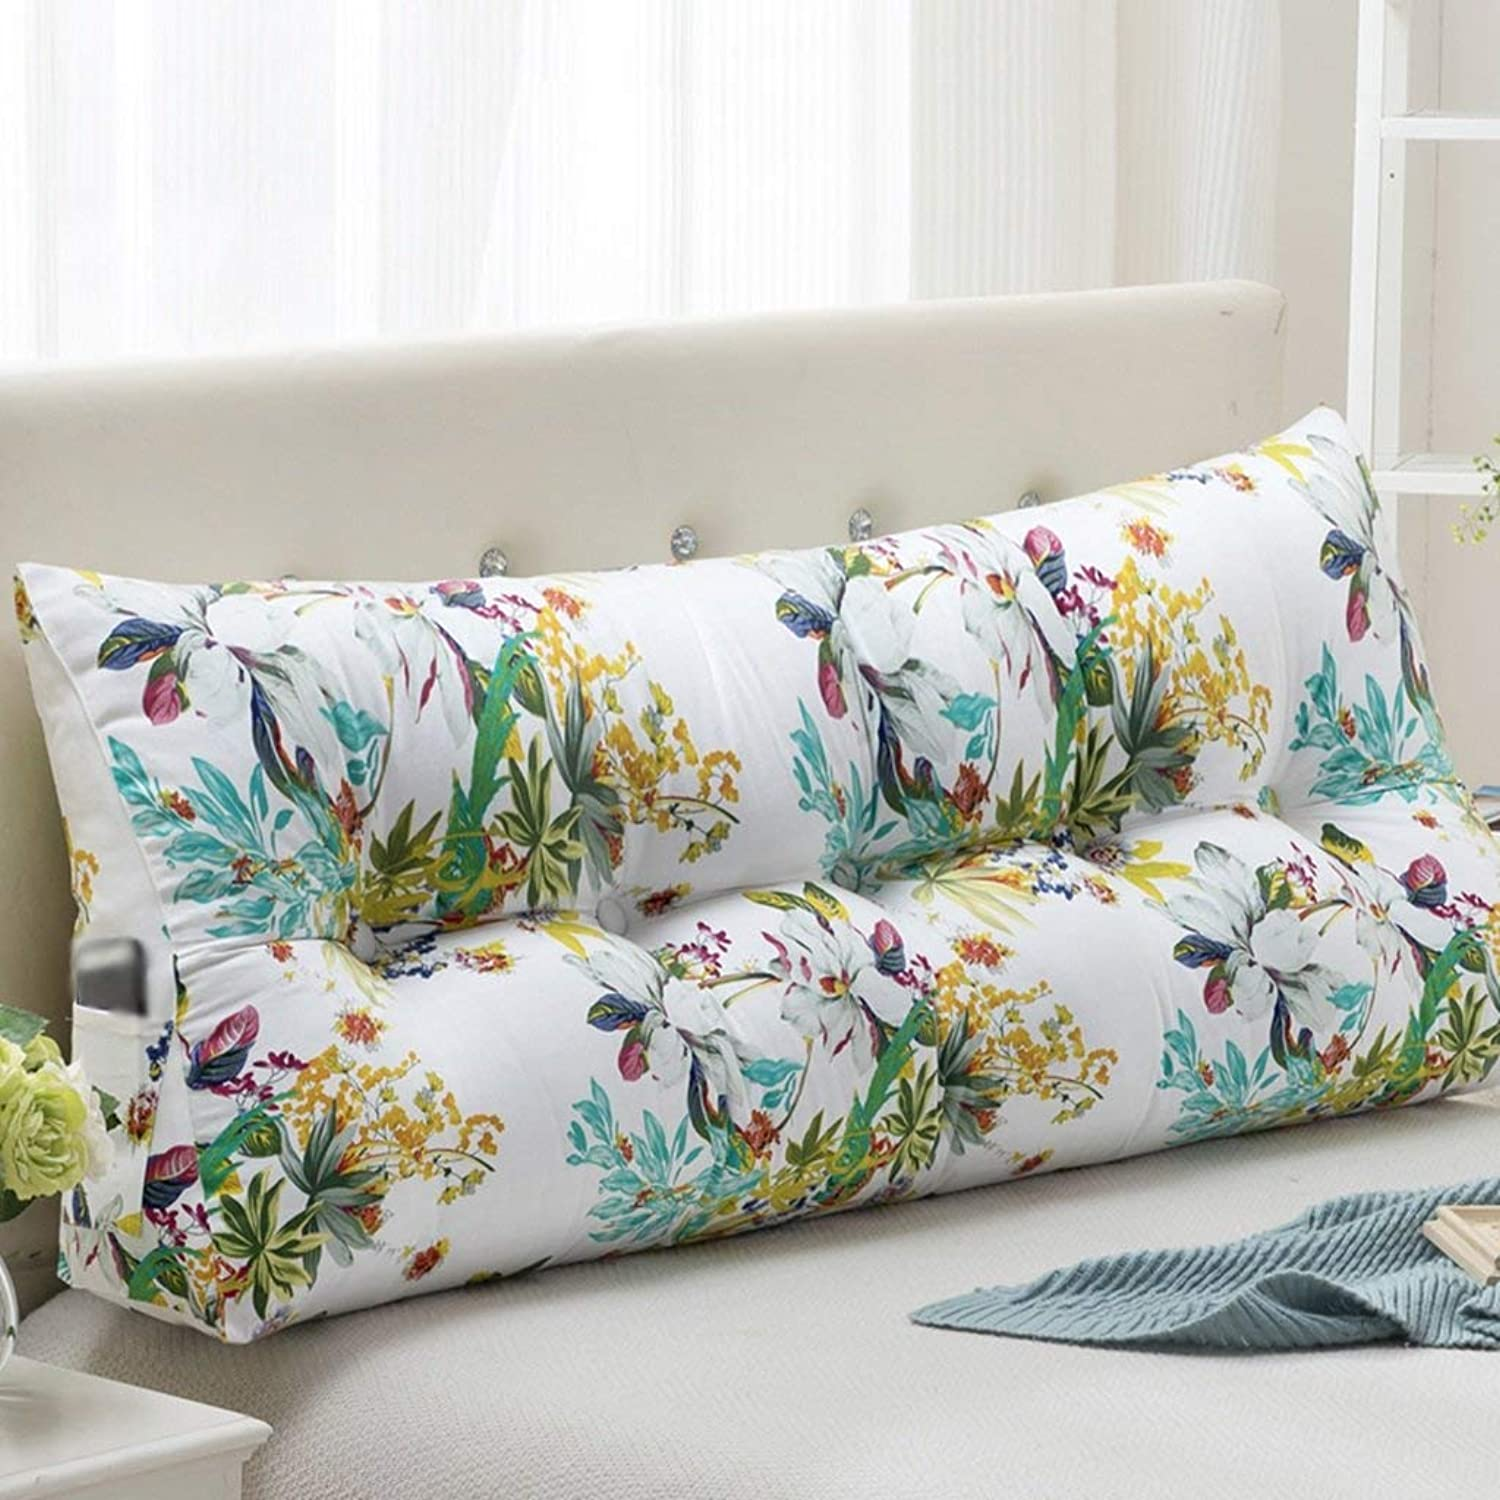 Bed Head Cushion Bed Back Pad Triangle Bed Pillow Bedside Soft Bag Pillow Lumbar Positioning Supports Reading Comfortable Headrests, QiXian